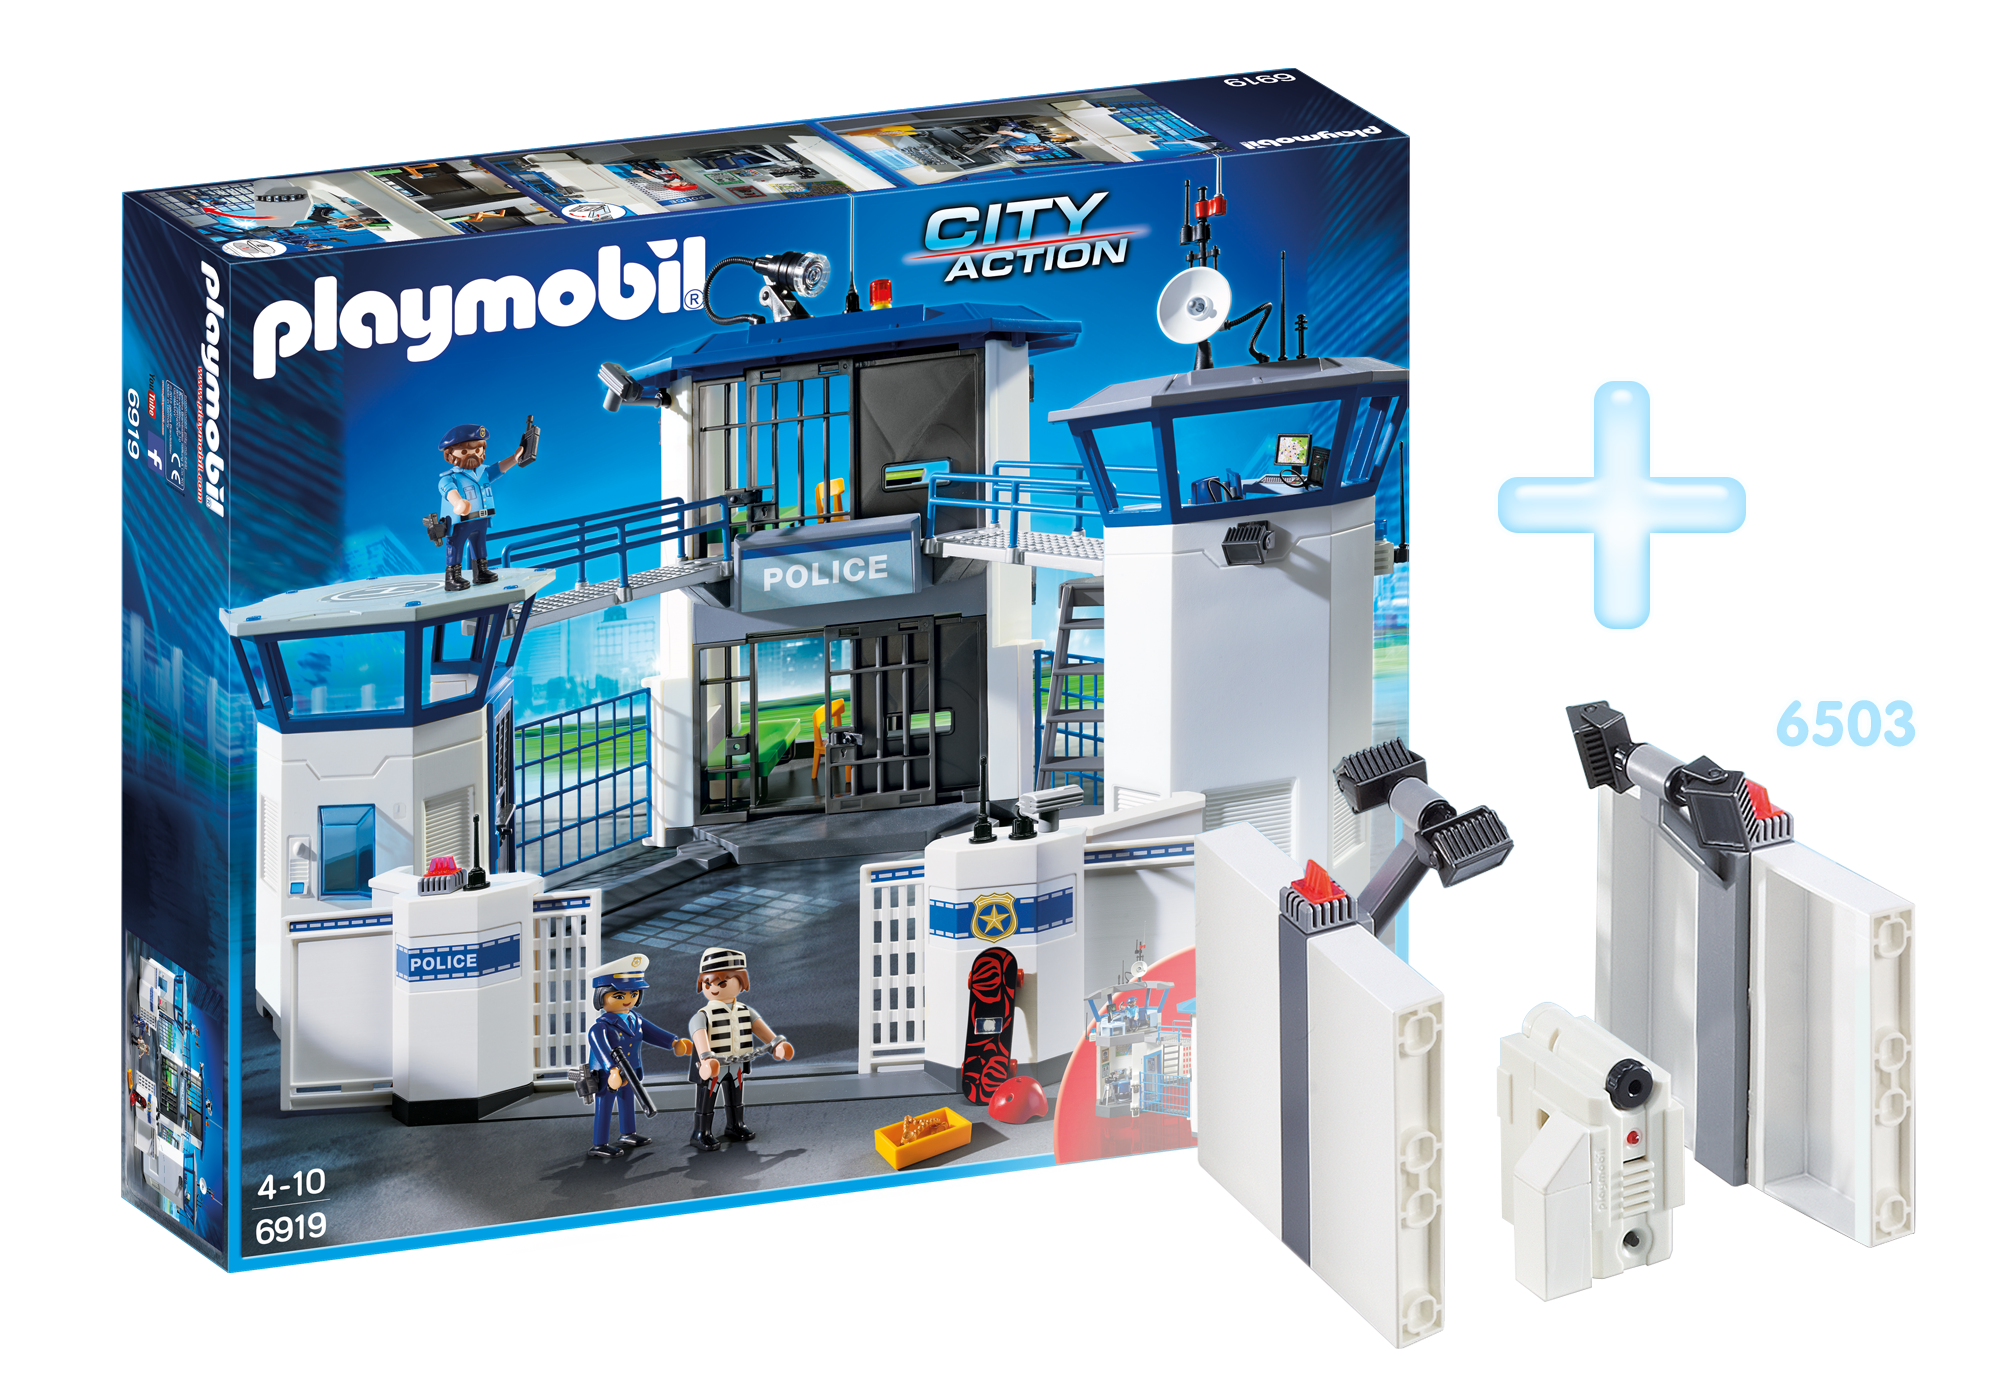 http://media.playmobil.com/i/playmobil/FR1810A_product_detail